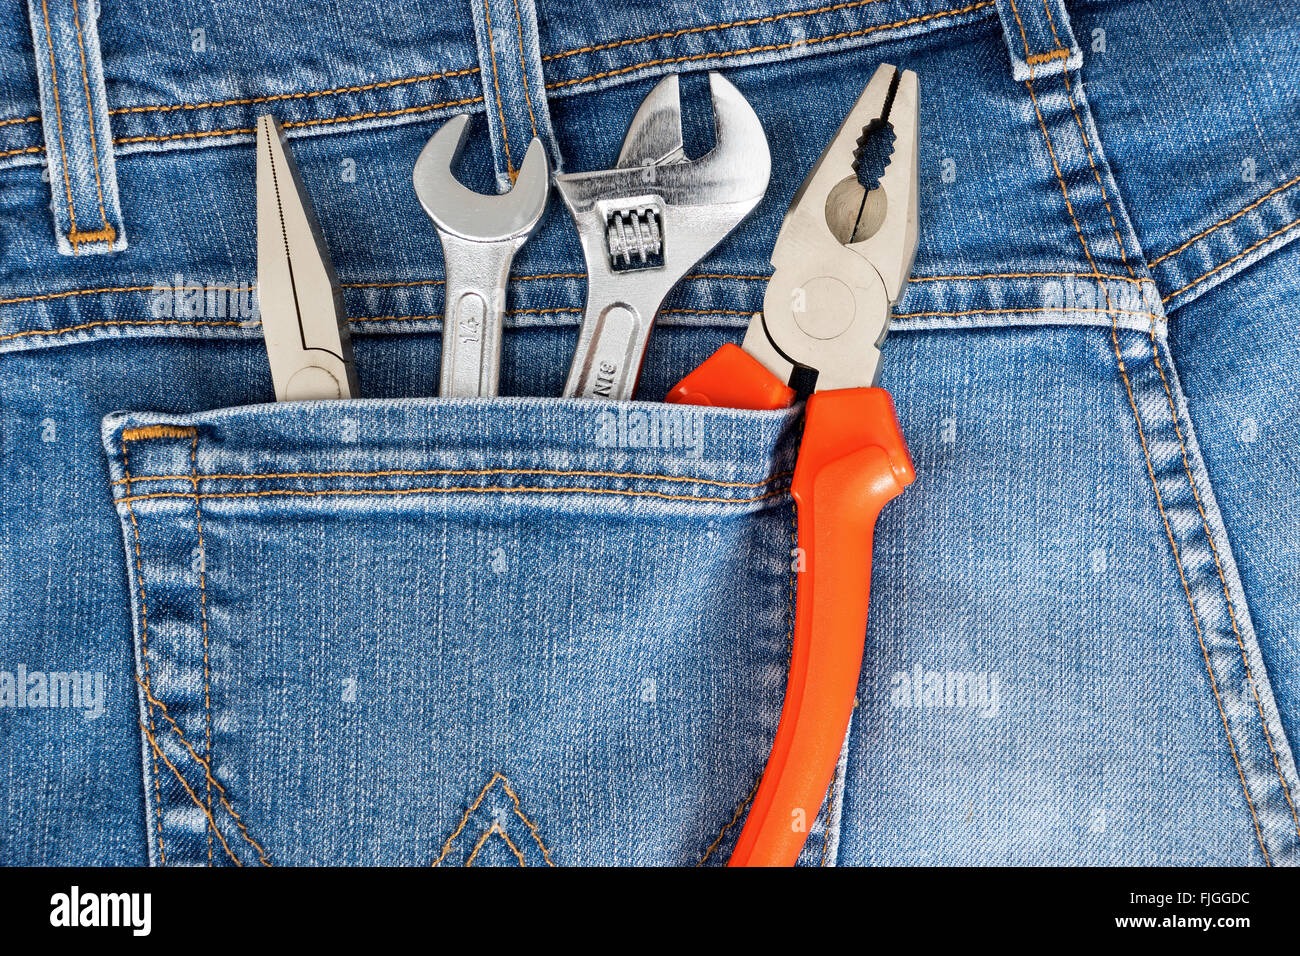 Toolkit of four items in a blue jeans pocket - Stock Image